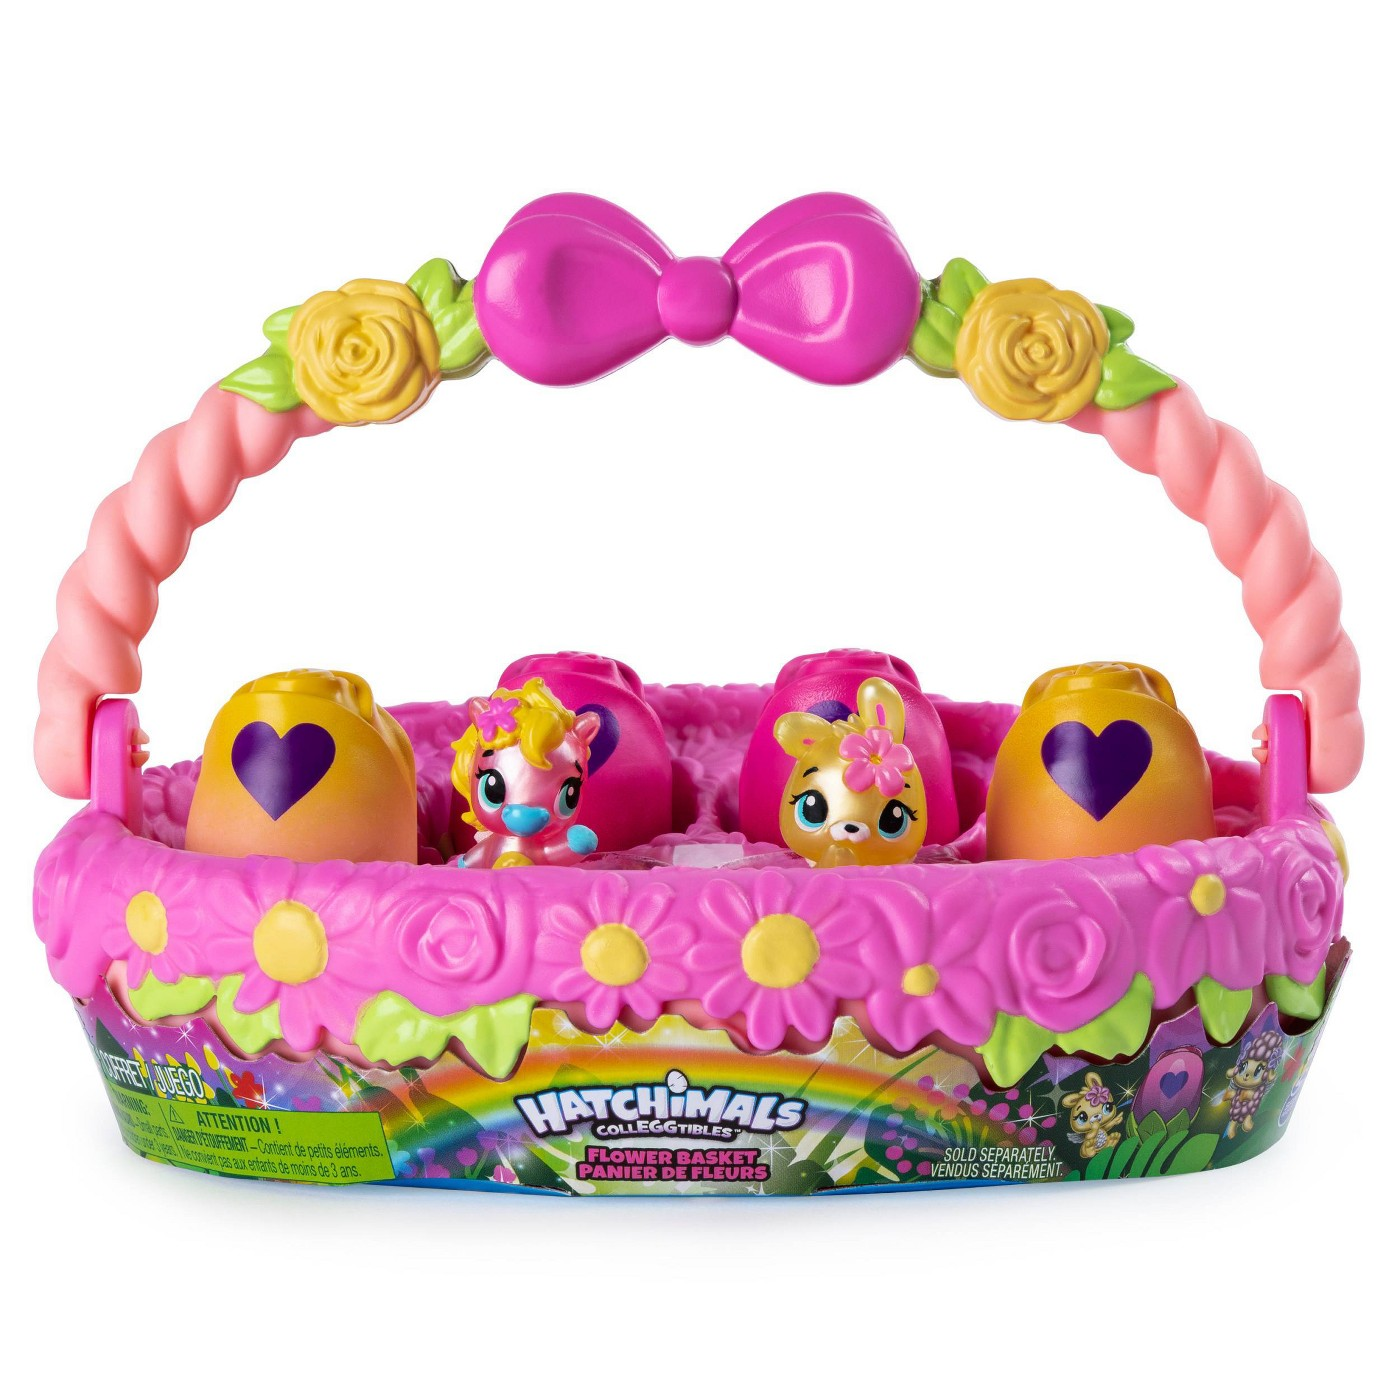 Hatchimals CollEGGtibles - Spring Basket with 6 Hatchimals CollEGGtibles - image 1 of 8